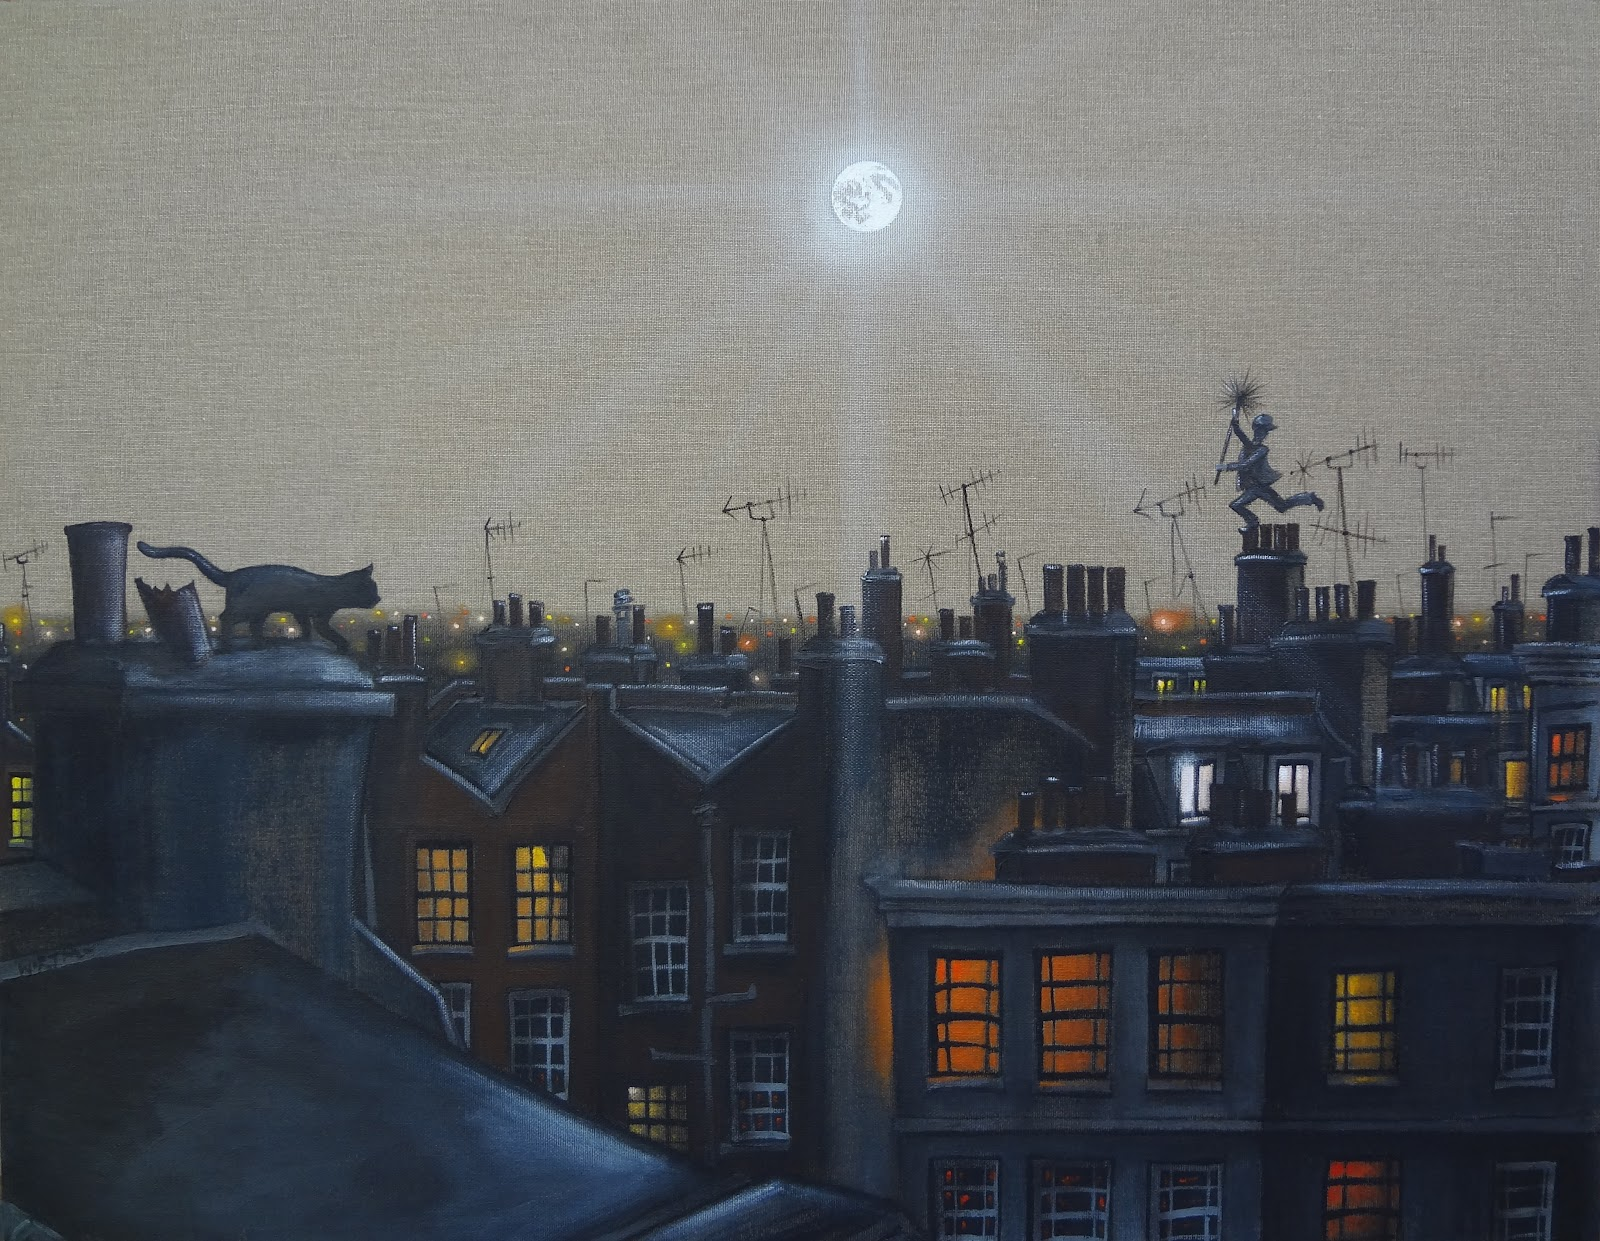 The cat the moon and the chimney sweep